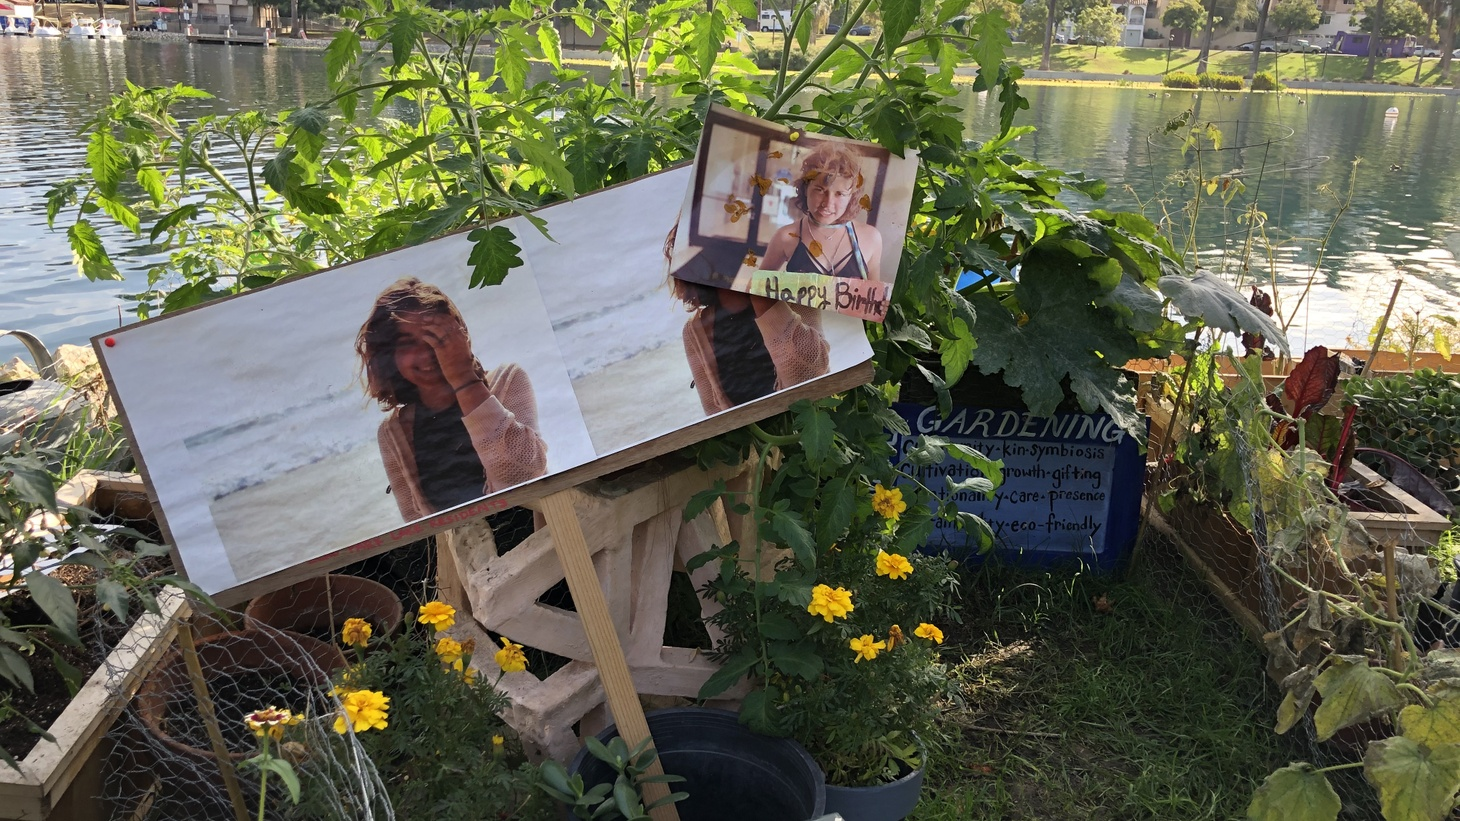 Photo: A community garden was created a few months ago to commemorate the fentanyl-related death of a woman who had been staying at the encampment.